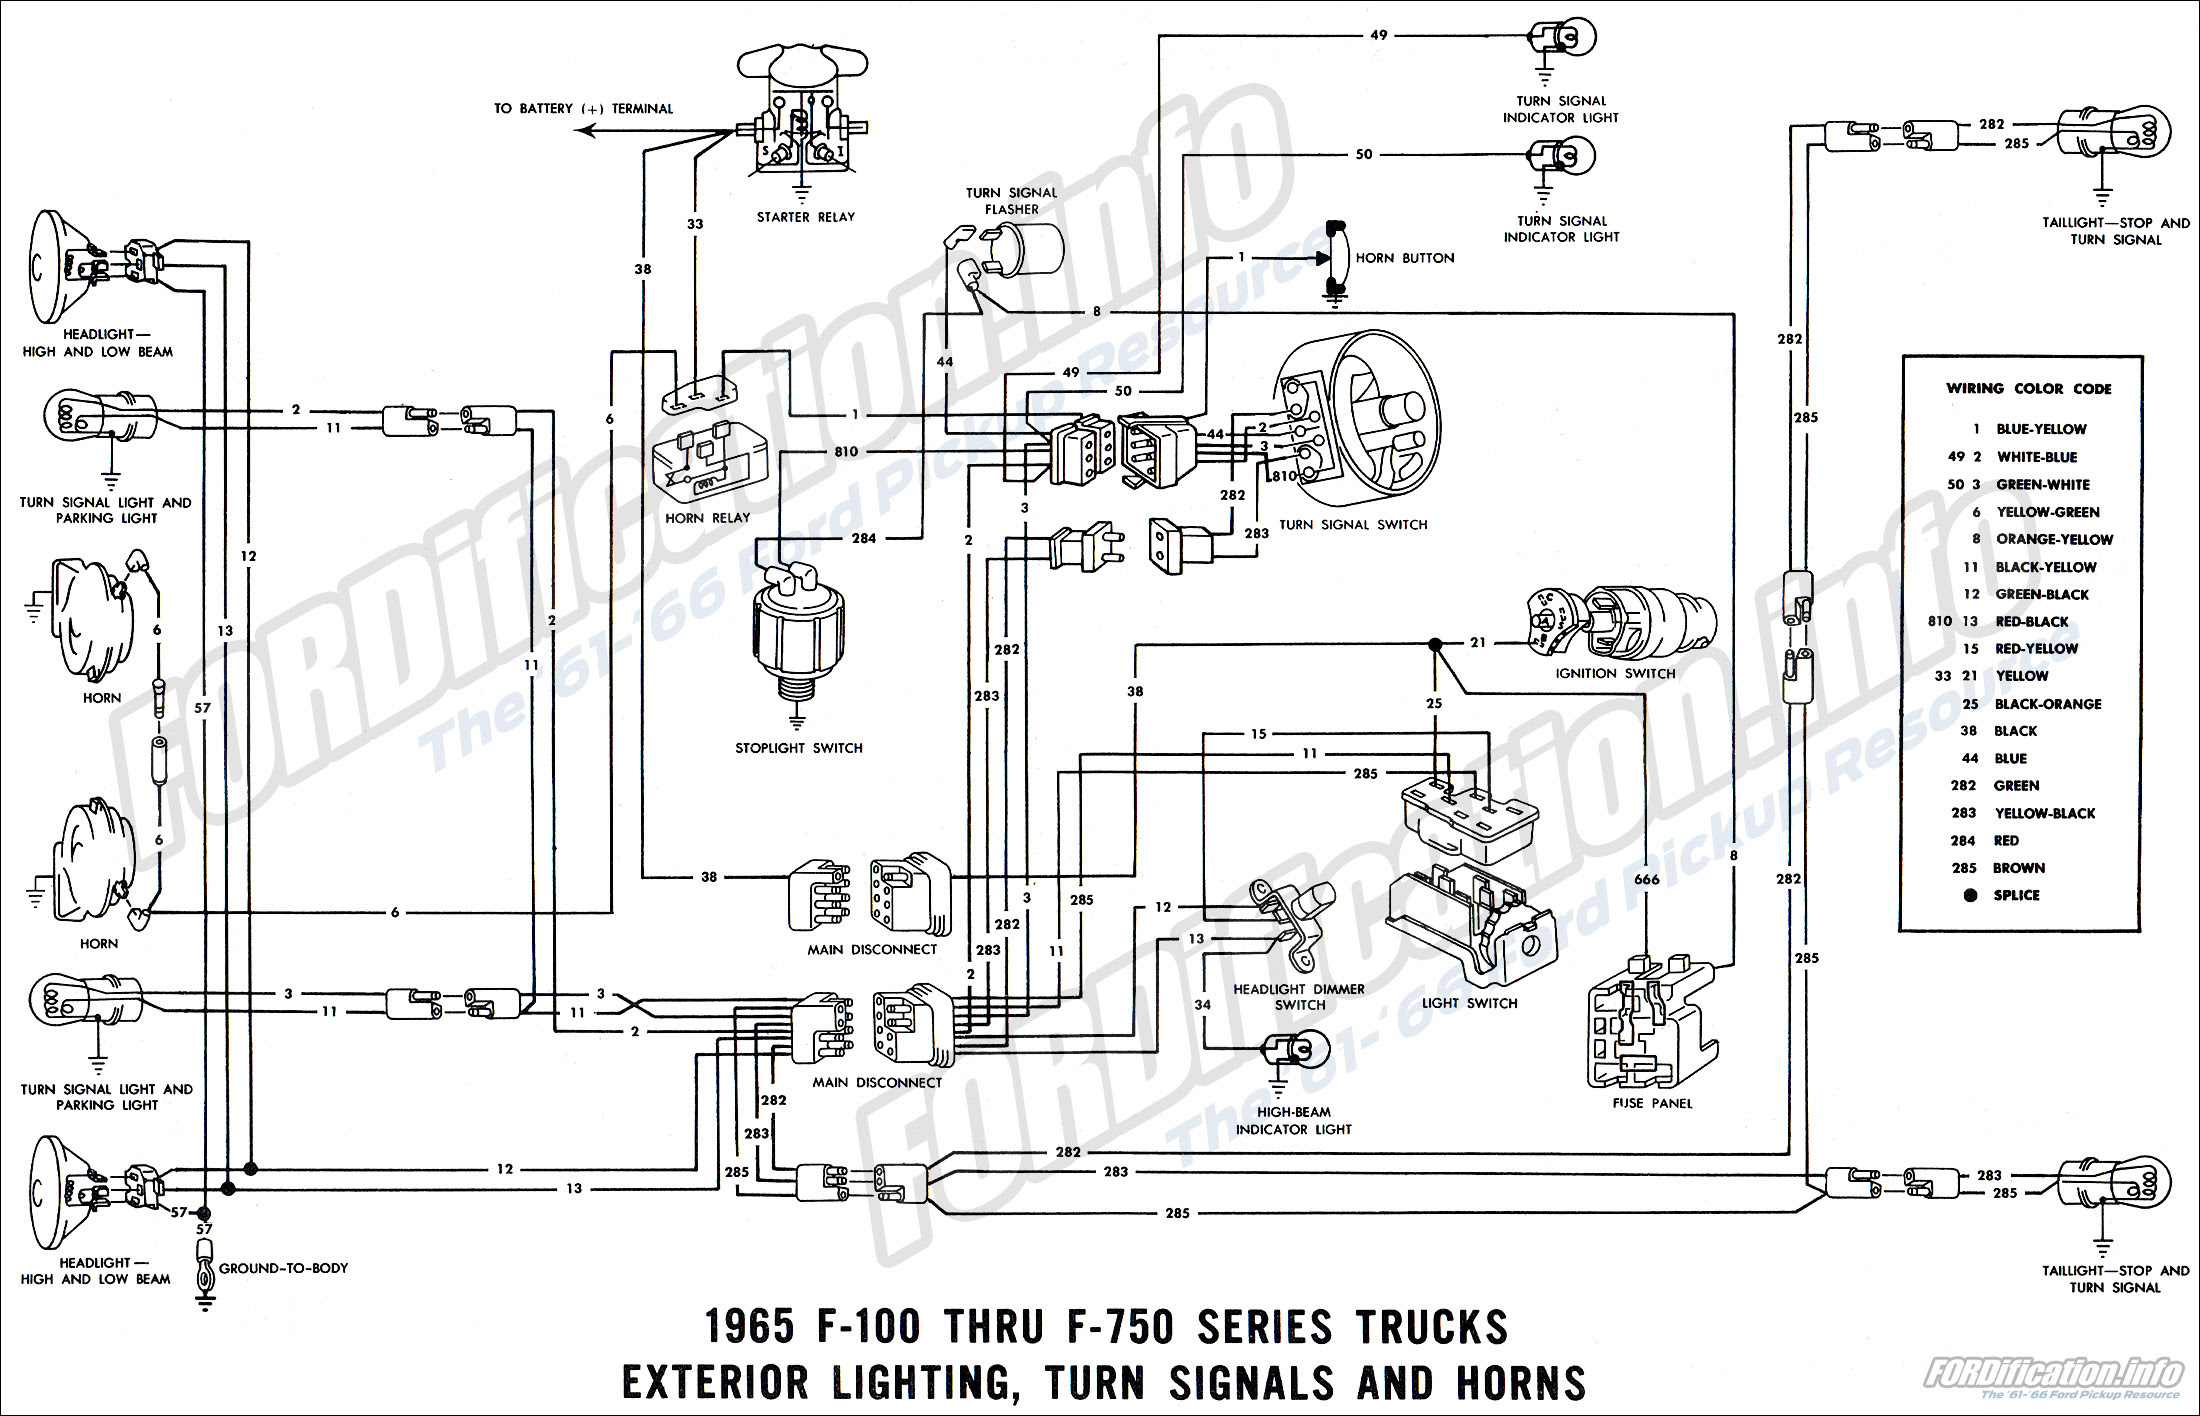 Wiring Diagram For 1968 Ford F250 Wiring Diagrams Connection Connection Miglioribanche It